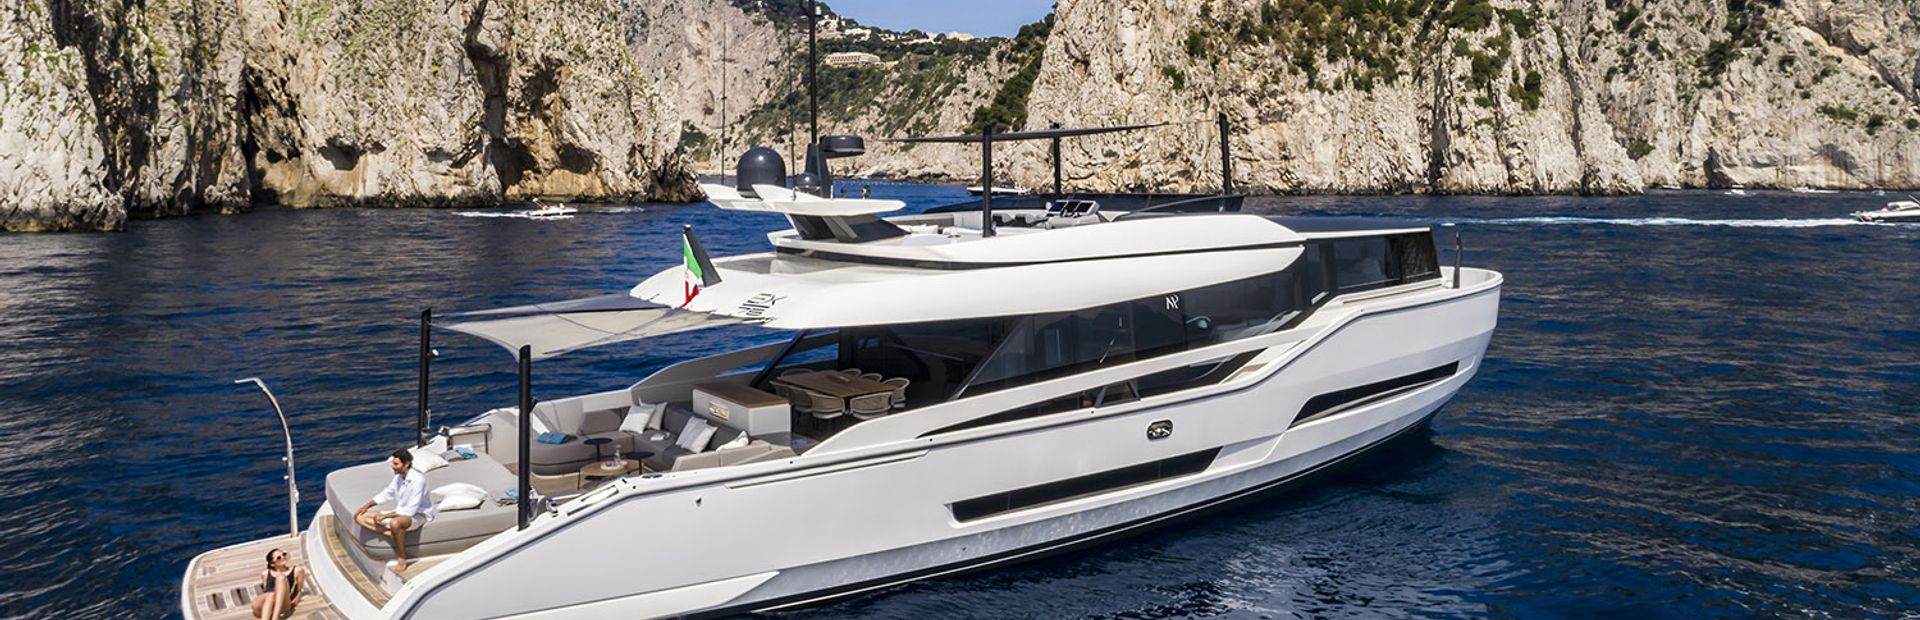 Extra 86 Yacht Charter